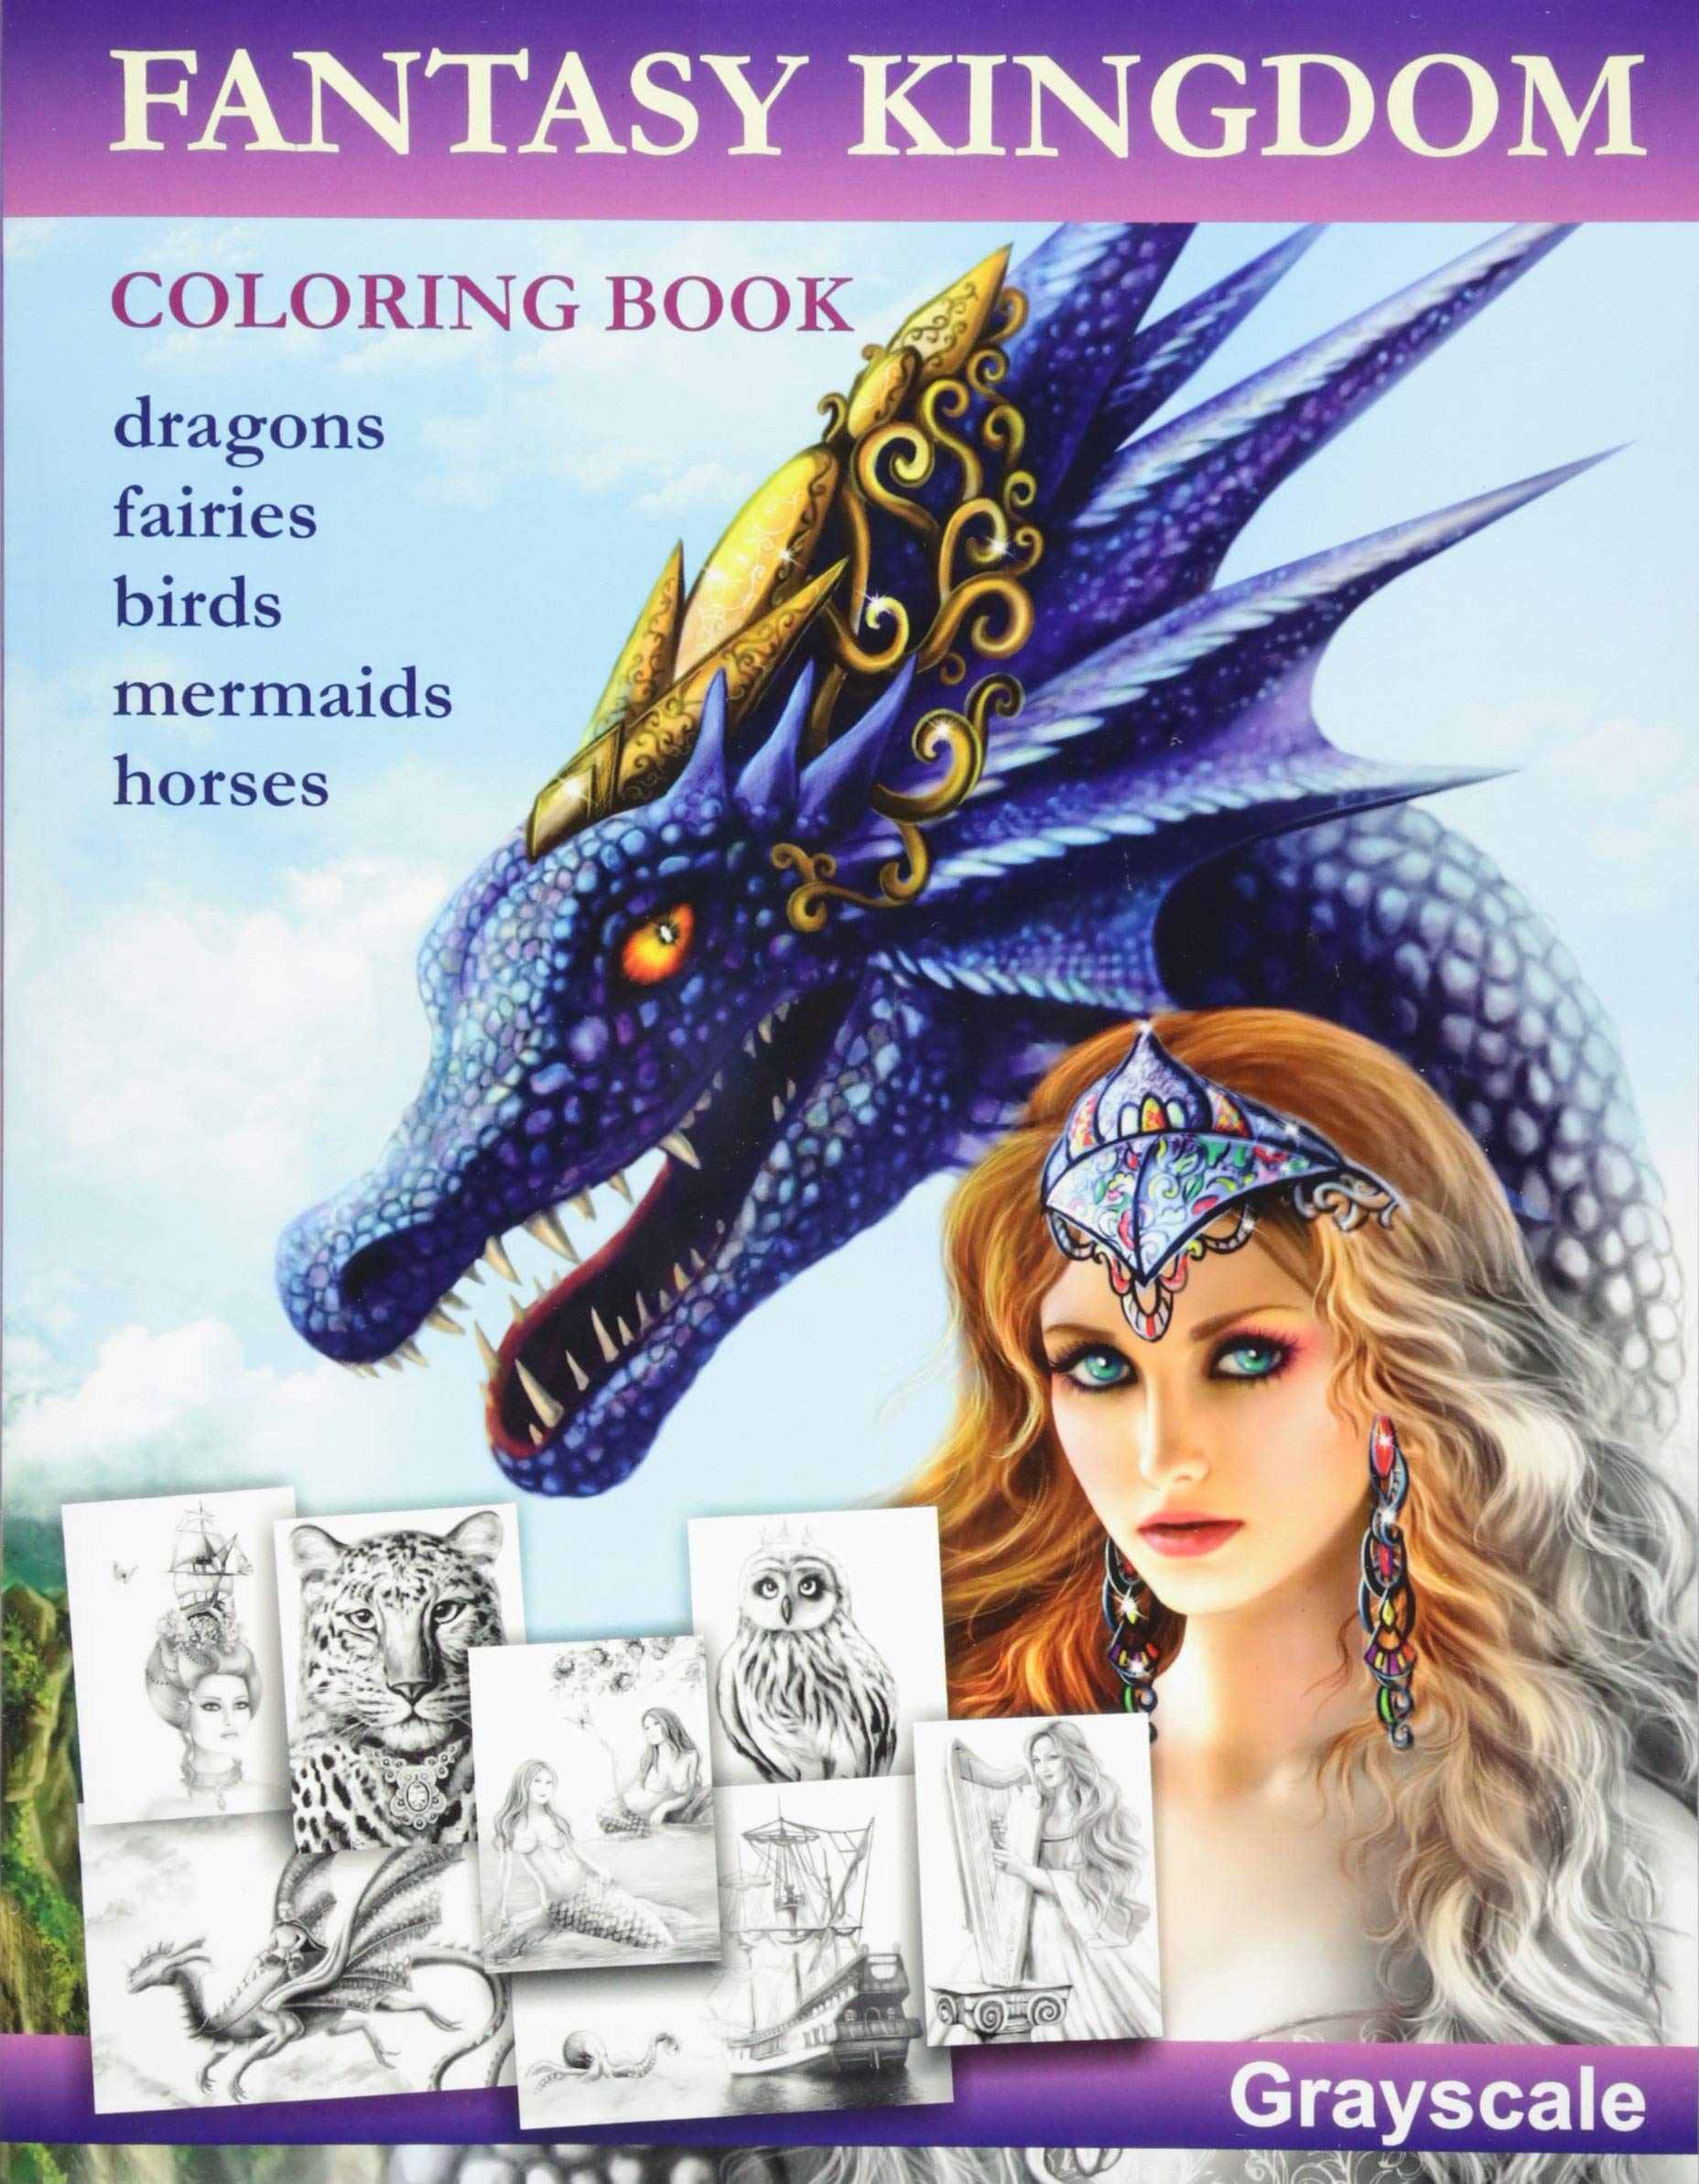 Details About Fantasy Kingdom Grayscale Adult Coloring Book By Alena Lazareva